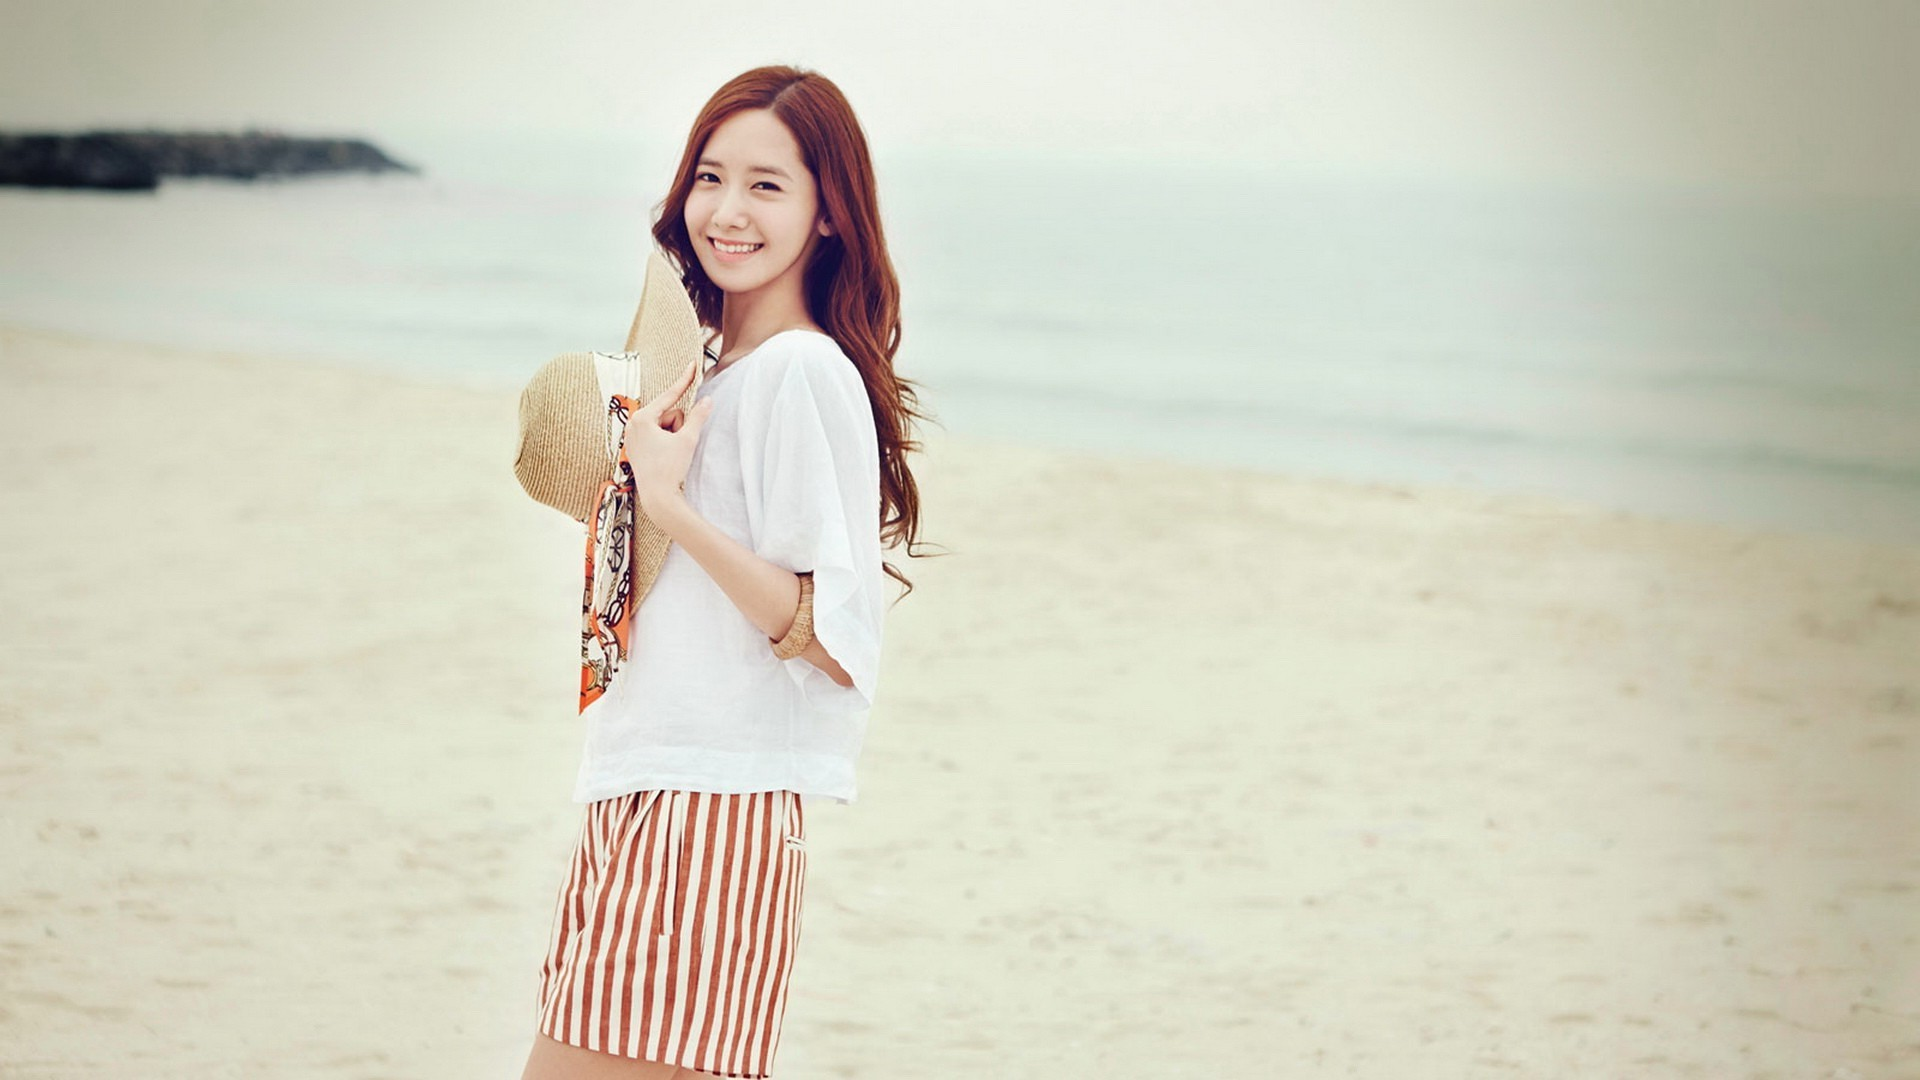 Res: 1920x1080, Yoona HD Wallpapers